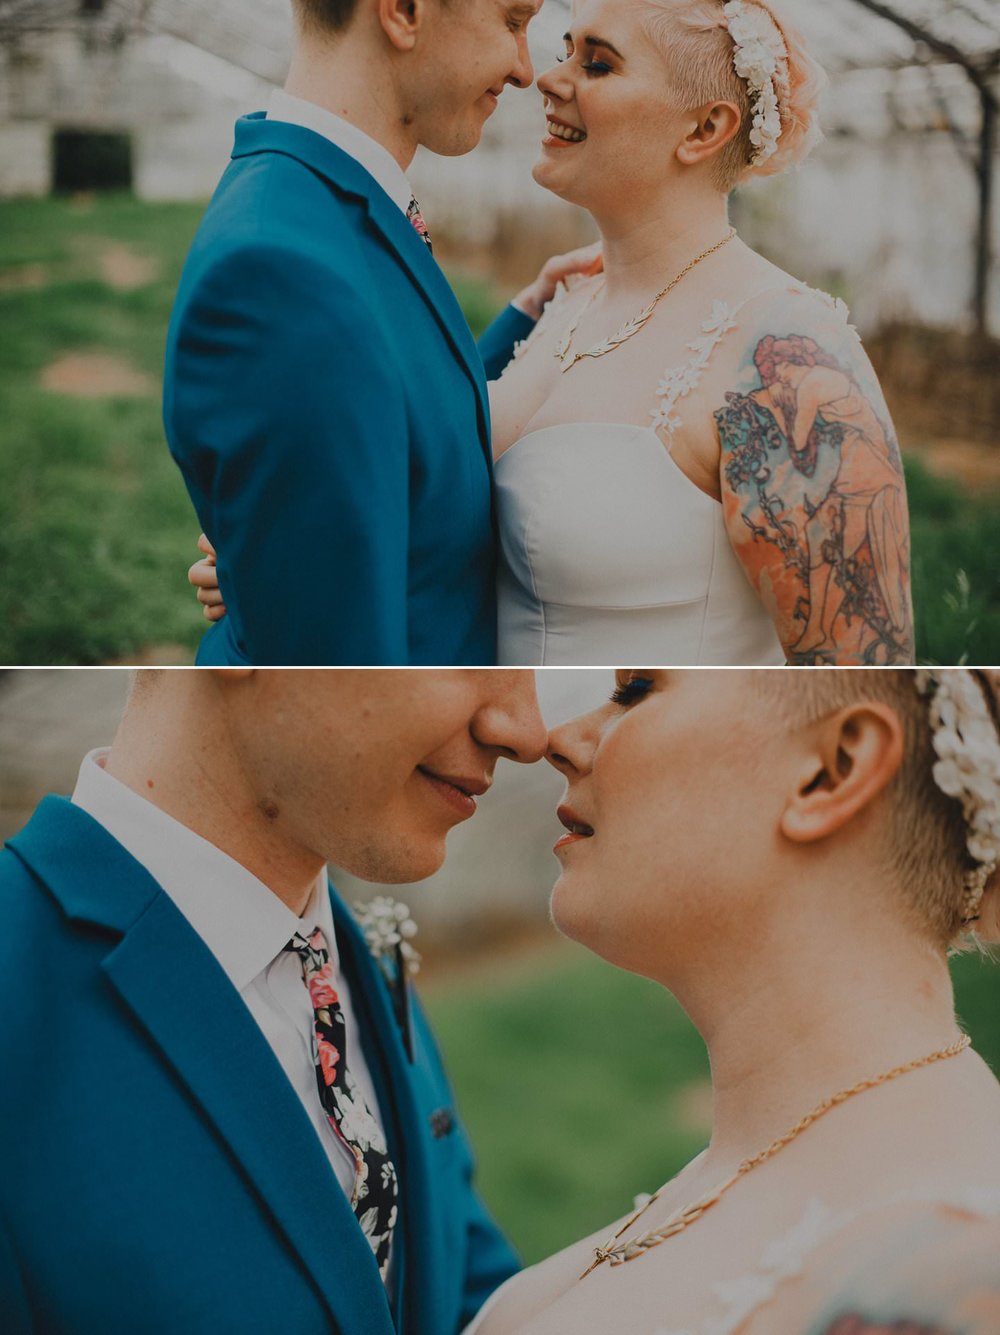 Candid wedding photos of bride and groom with tattoos in a glasshouse